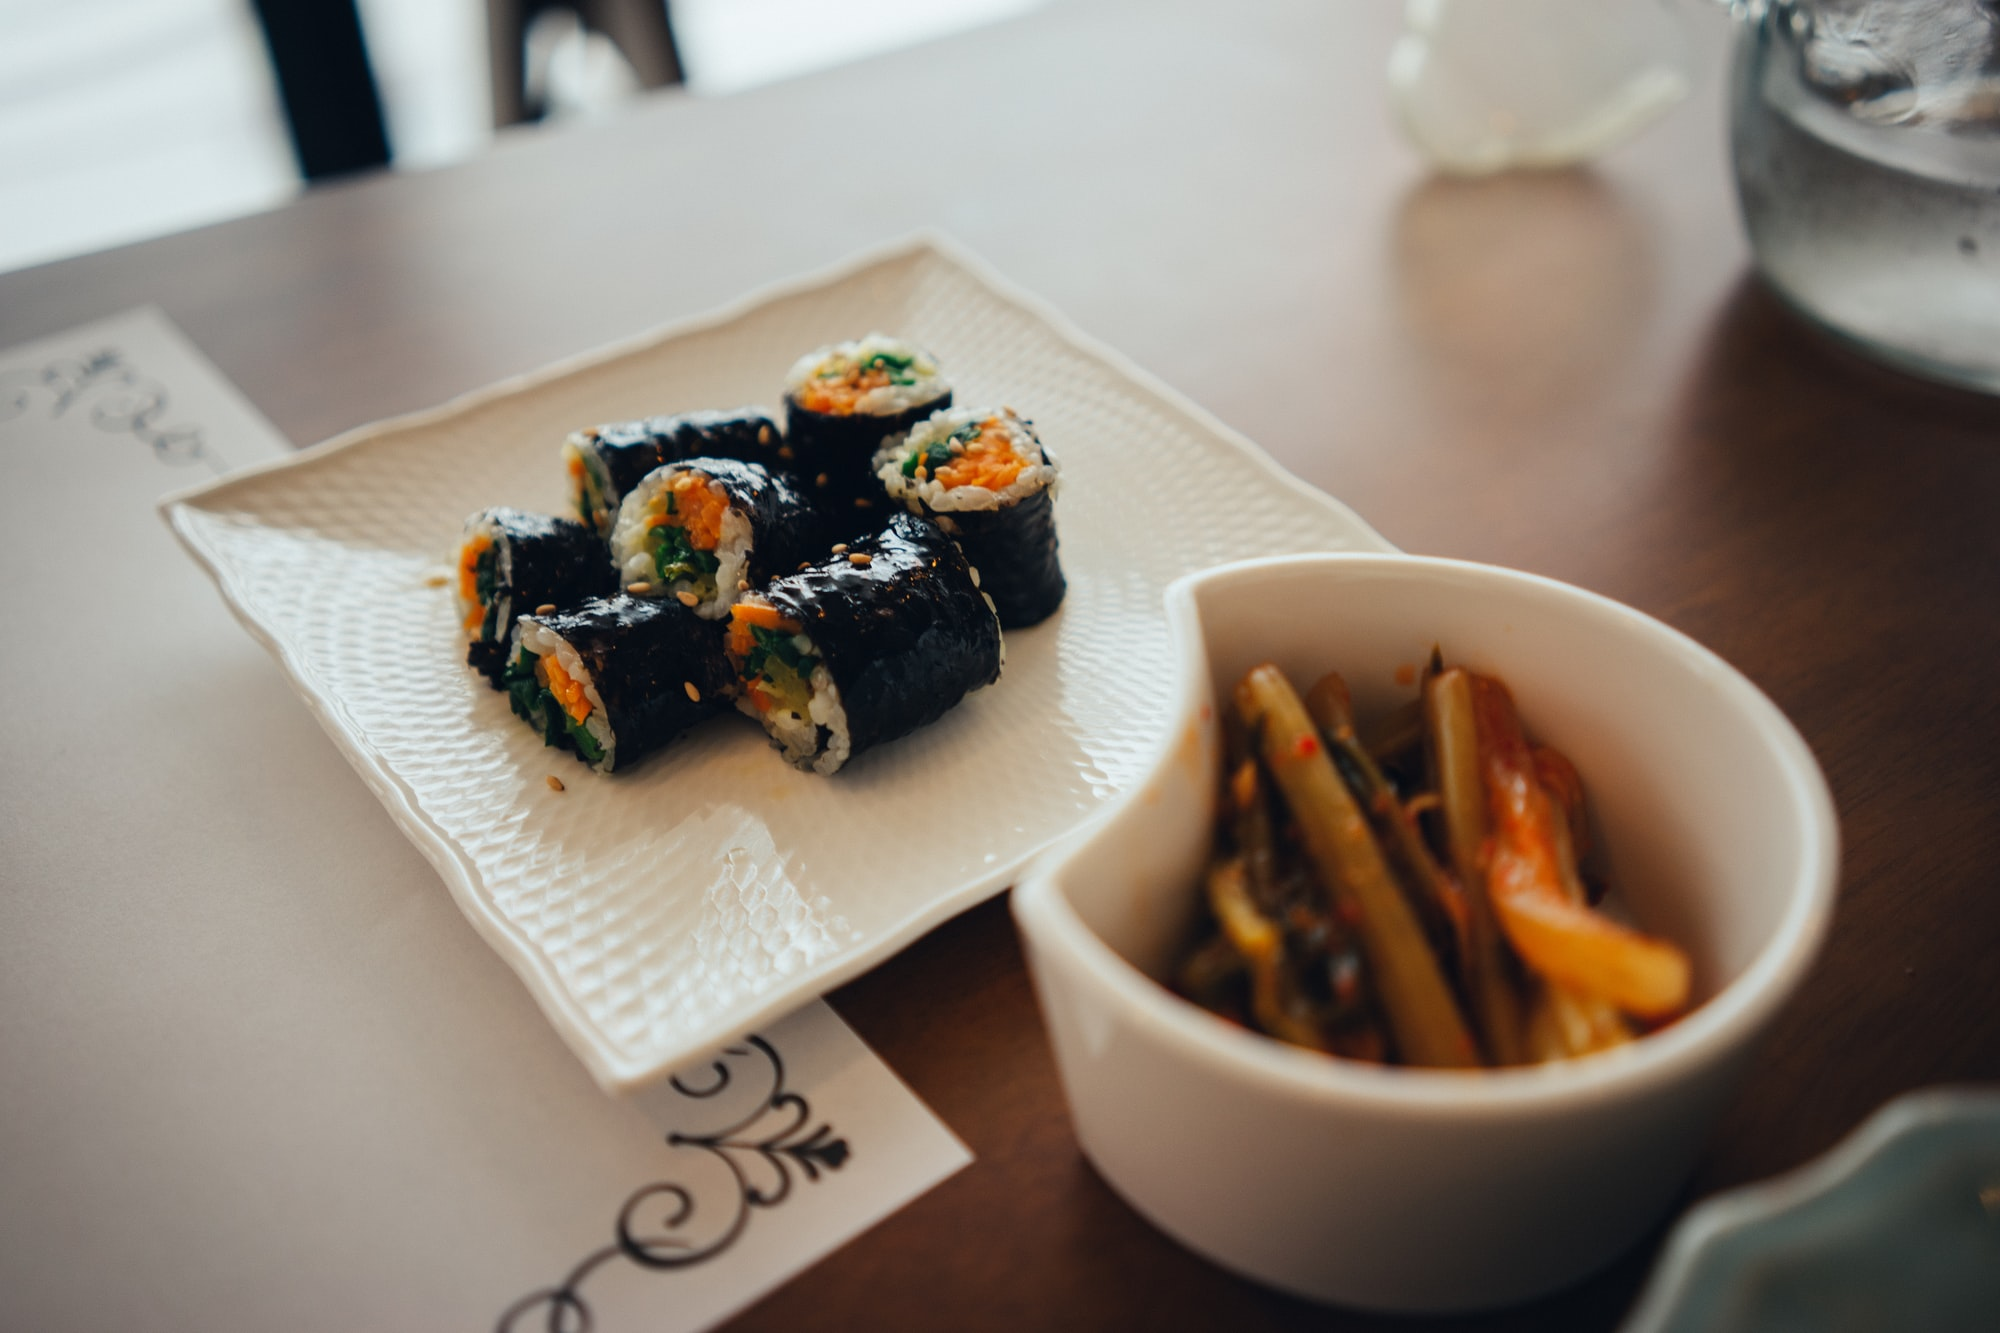 Gimbap is one of the favorite foods of Koreans. It's also a great dish to eat vegetables together. If you are traveling to Korea, try gimbap. You won't regret it.